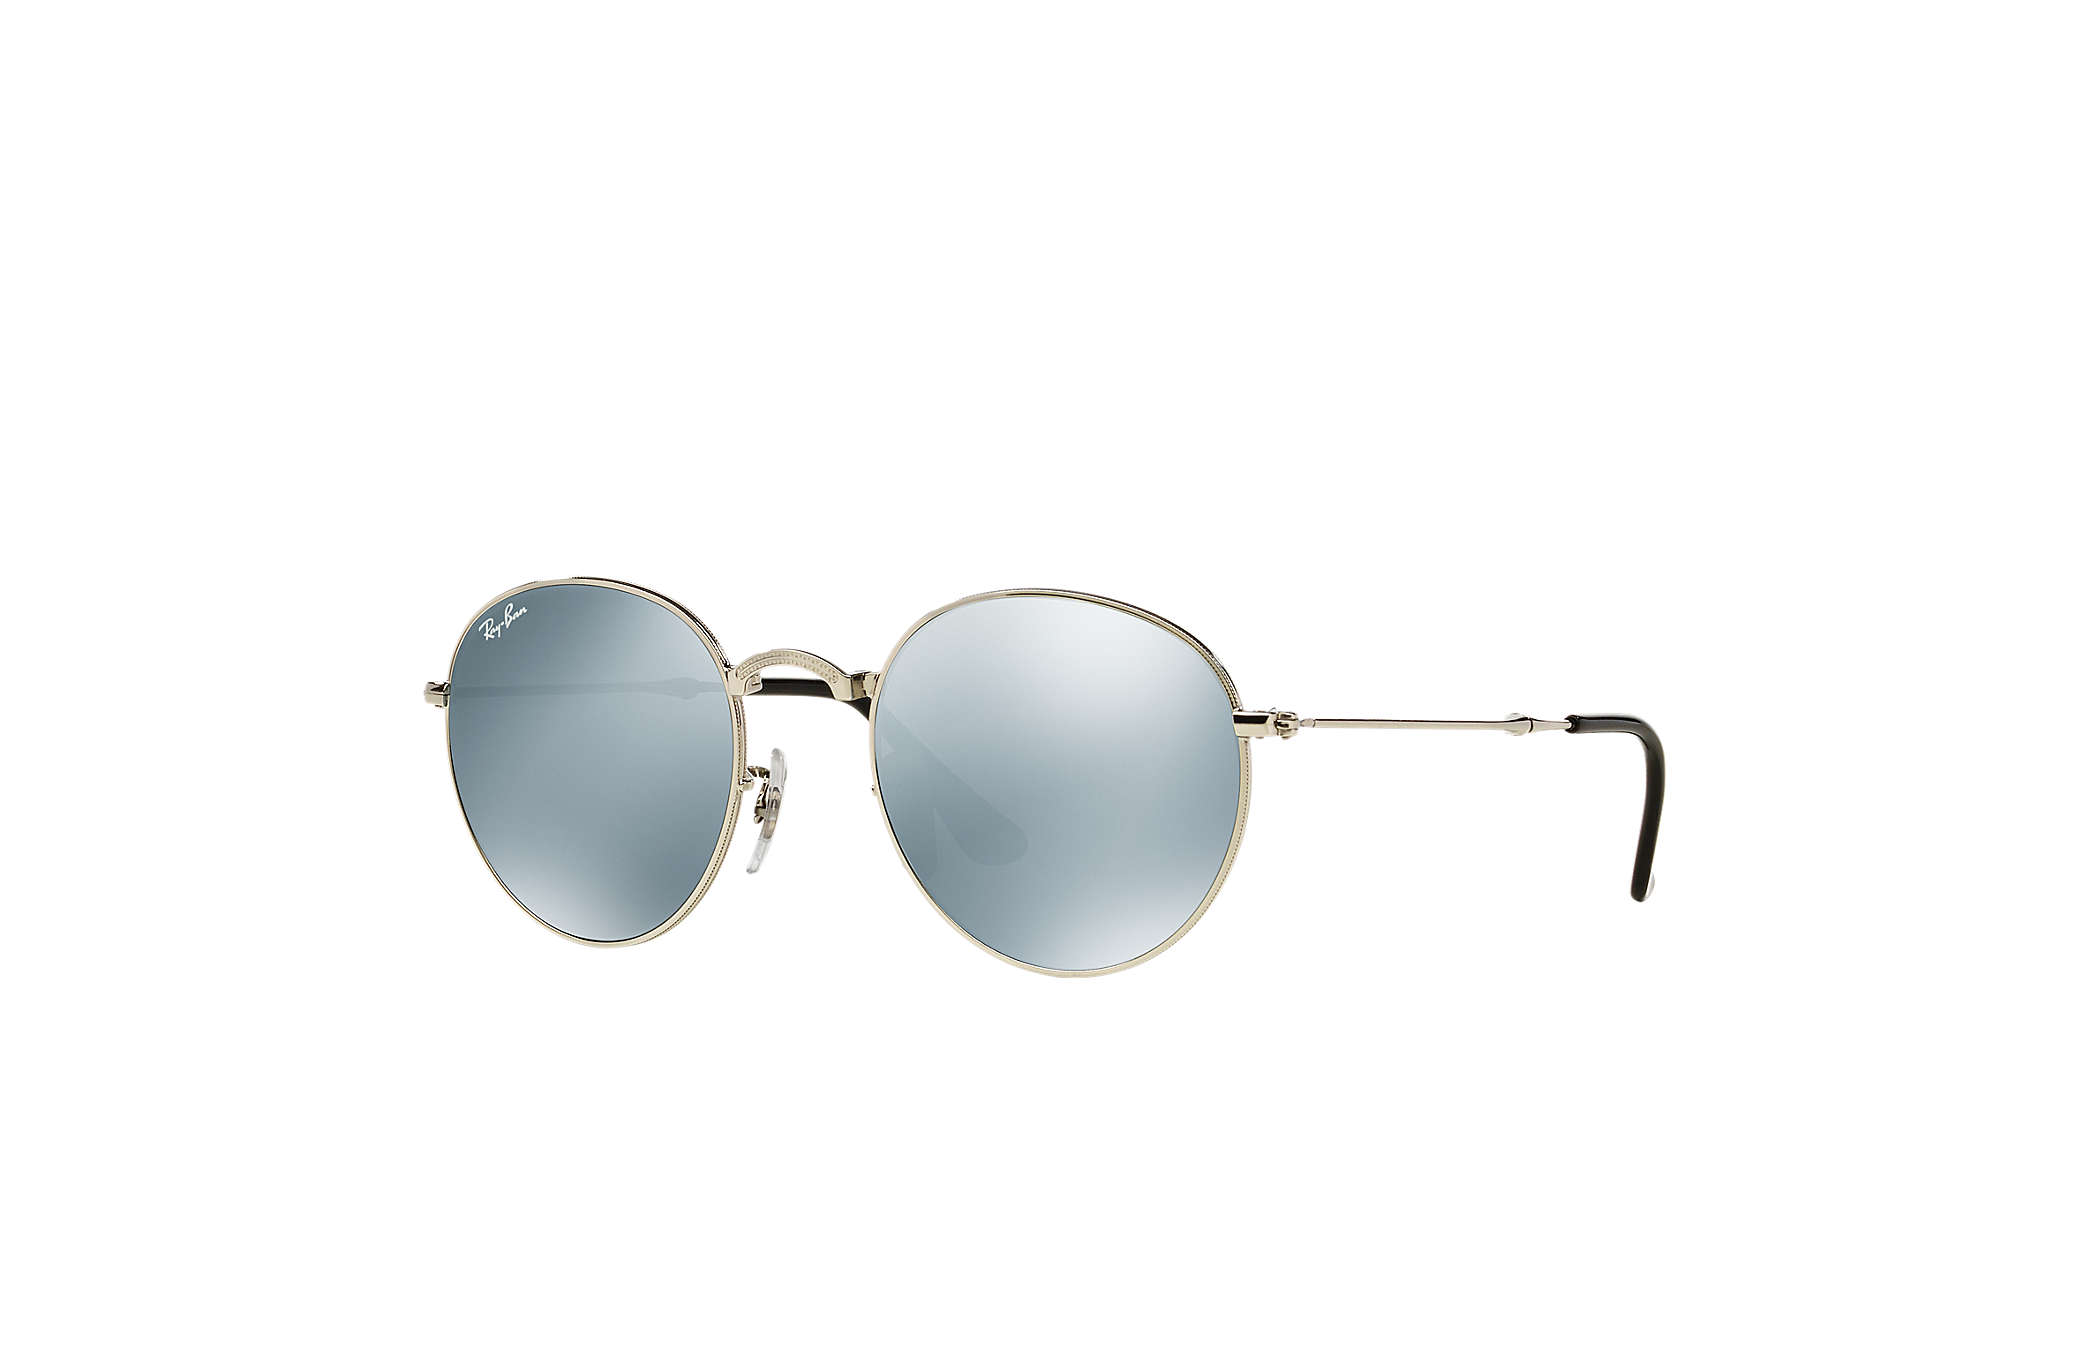 cdfedc3067e Ray-Ban Round Metal Folding RB3532 Silver - Metal - Silver Lenses ...